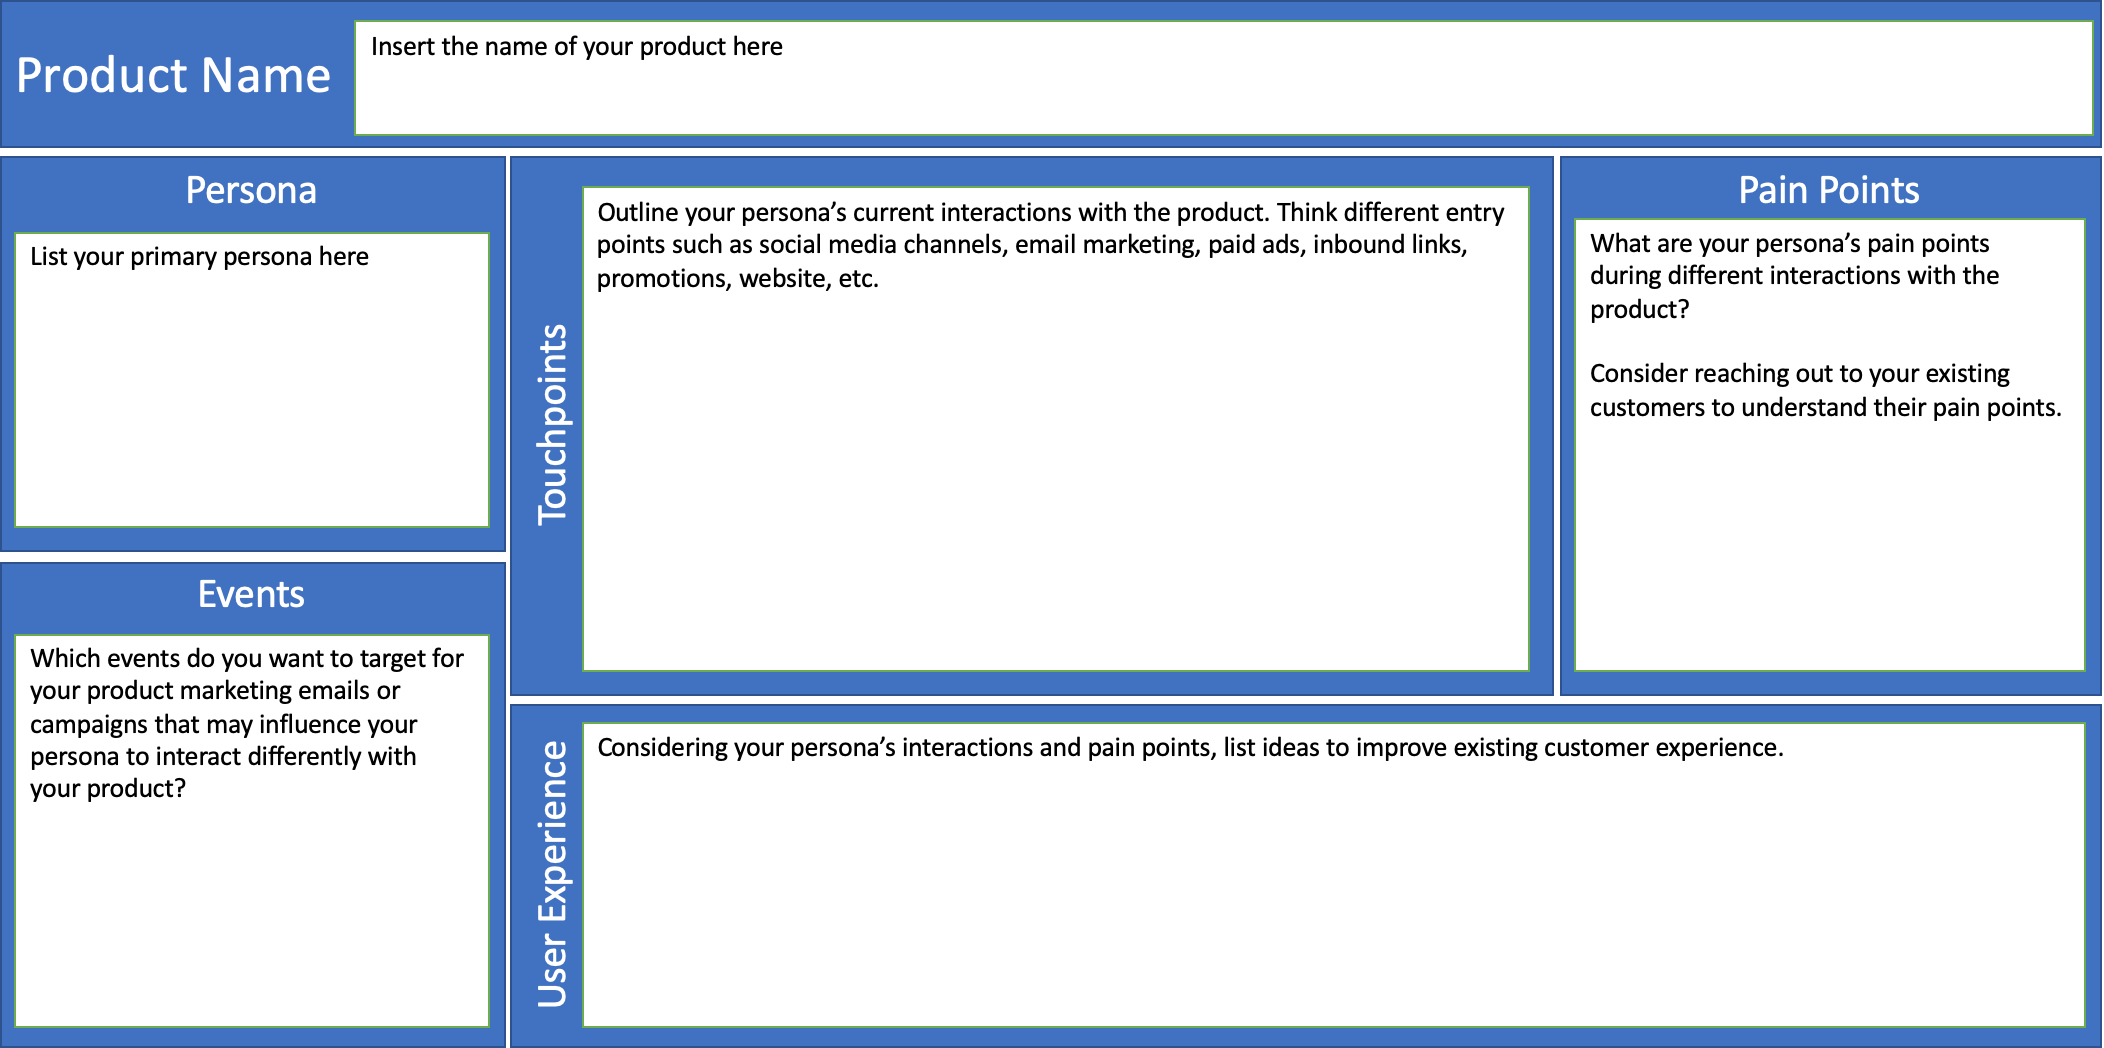 Customer Journey Mapping Canvas for an Existing Customer